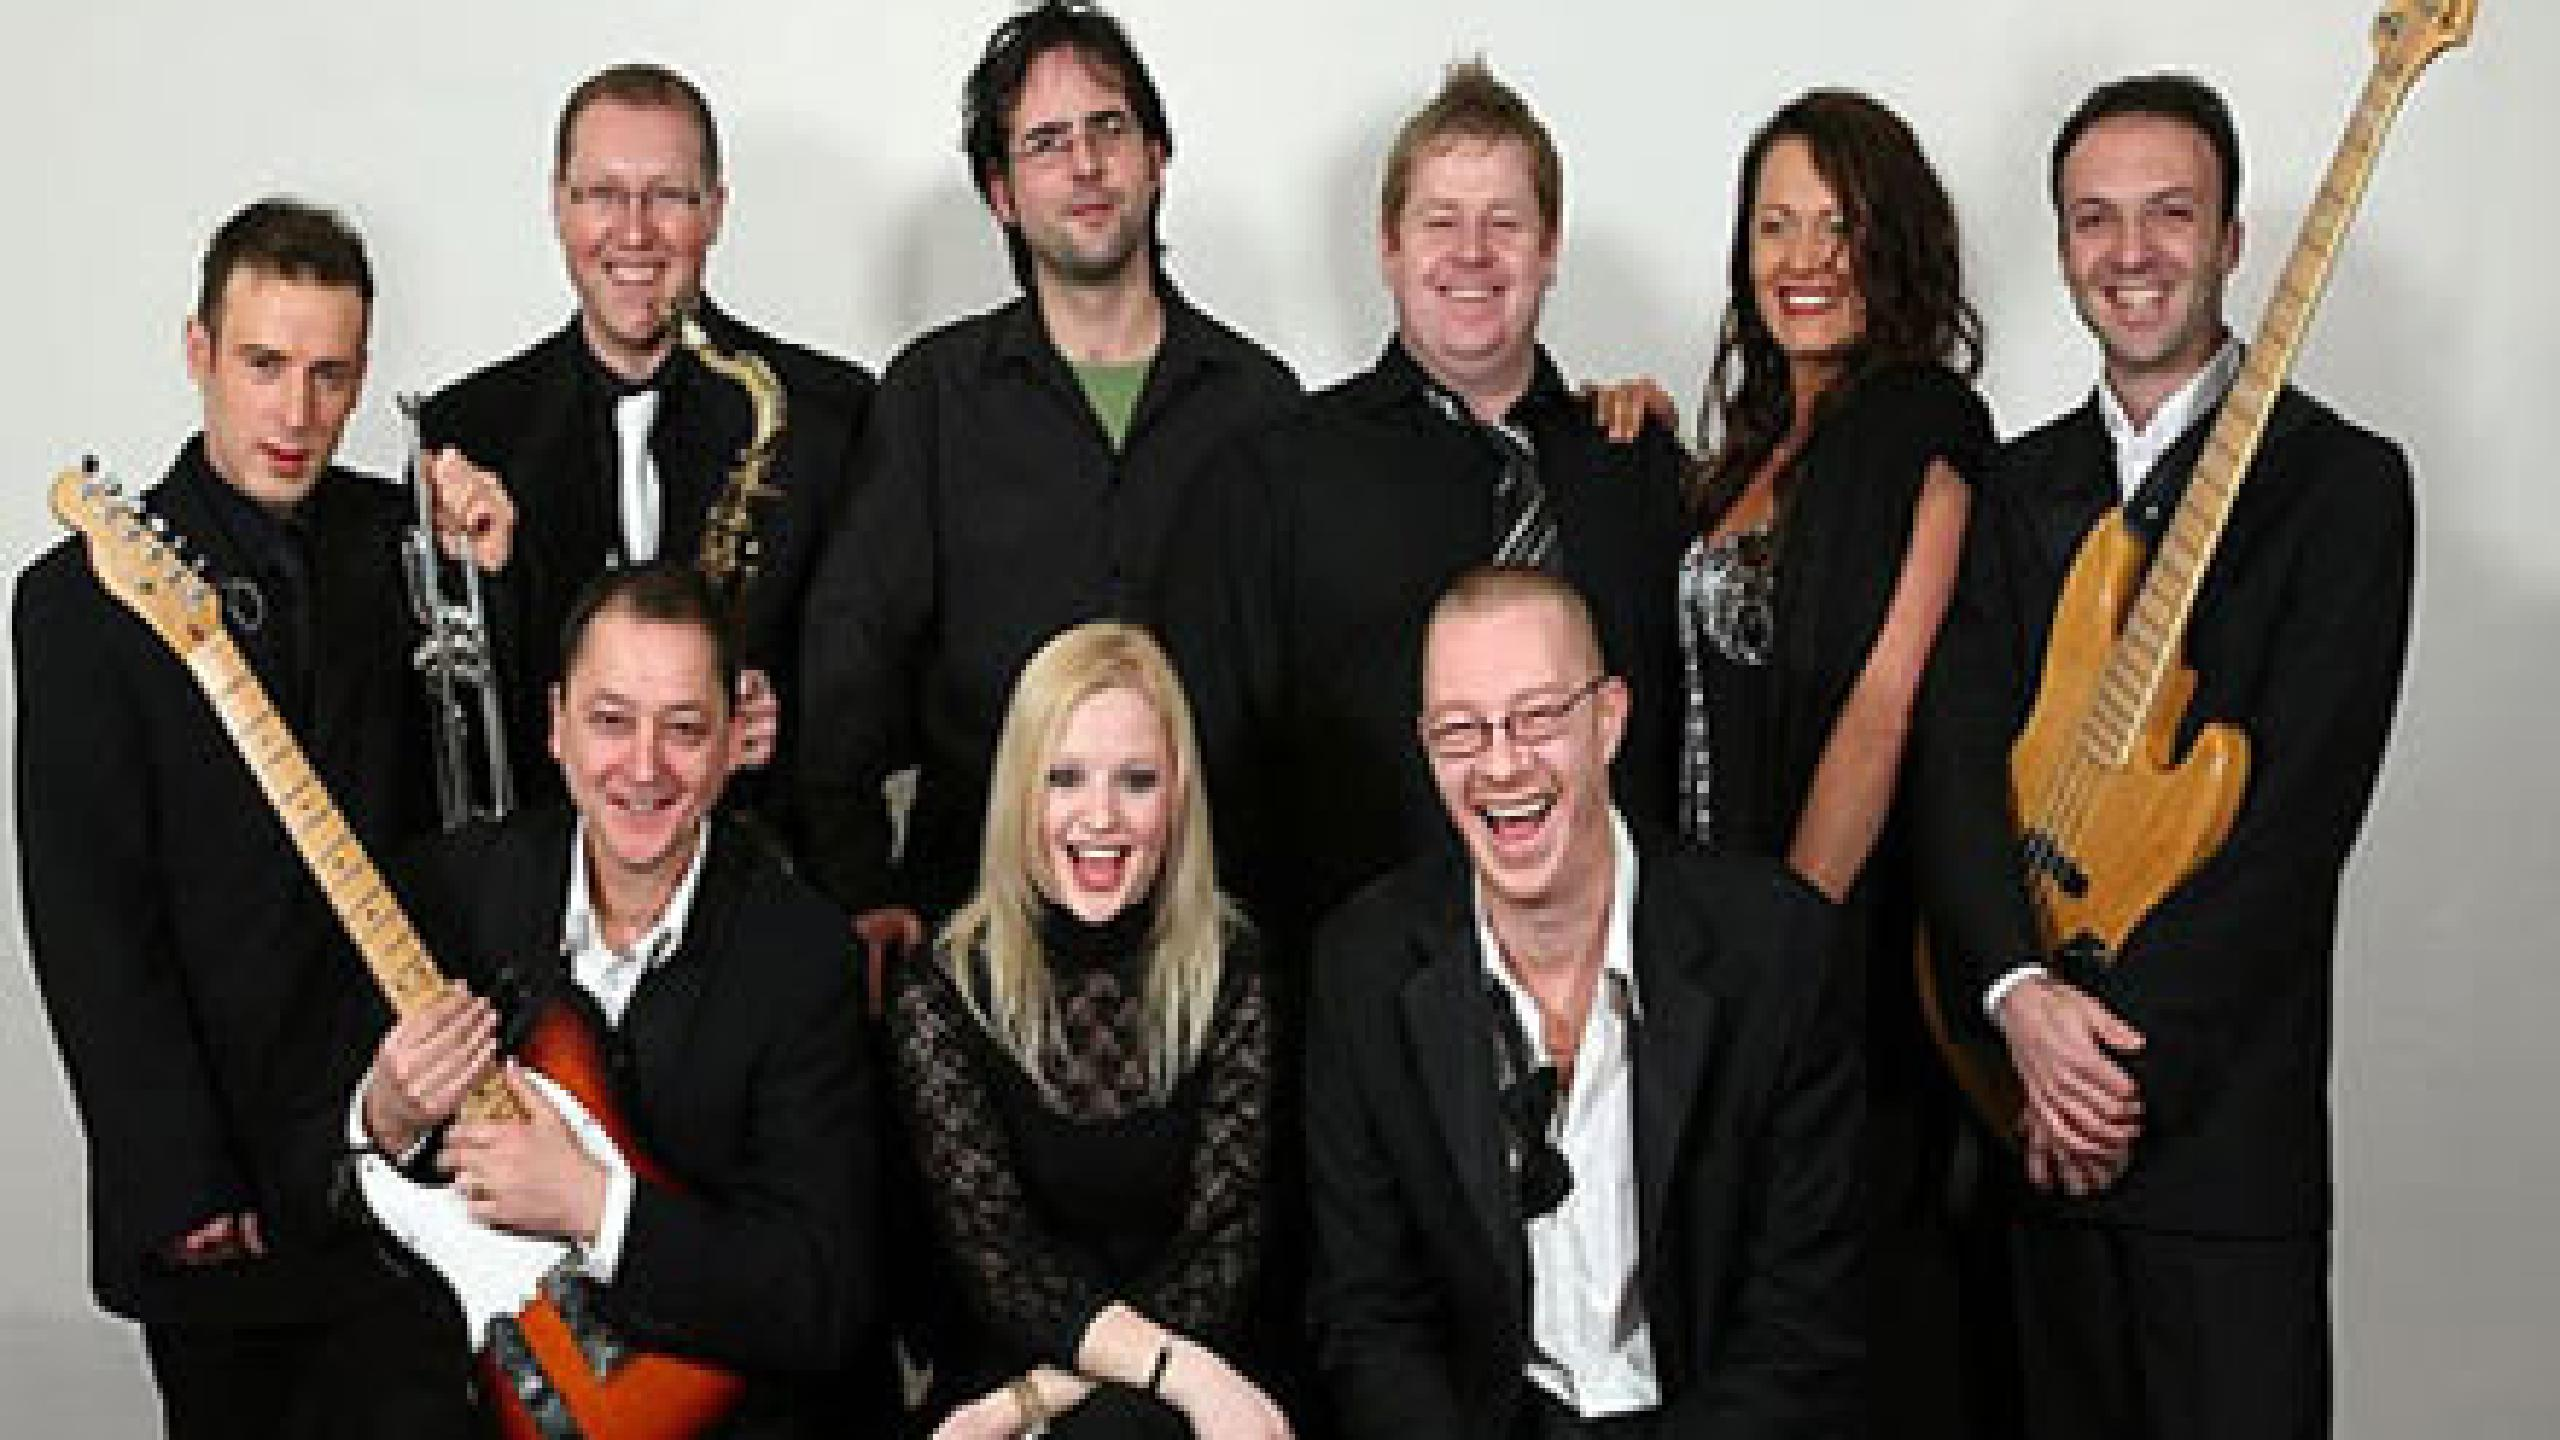 The Commitments Tour Dates 2019 2020 The Commitments